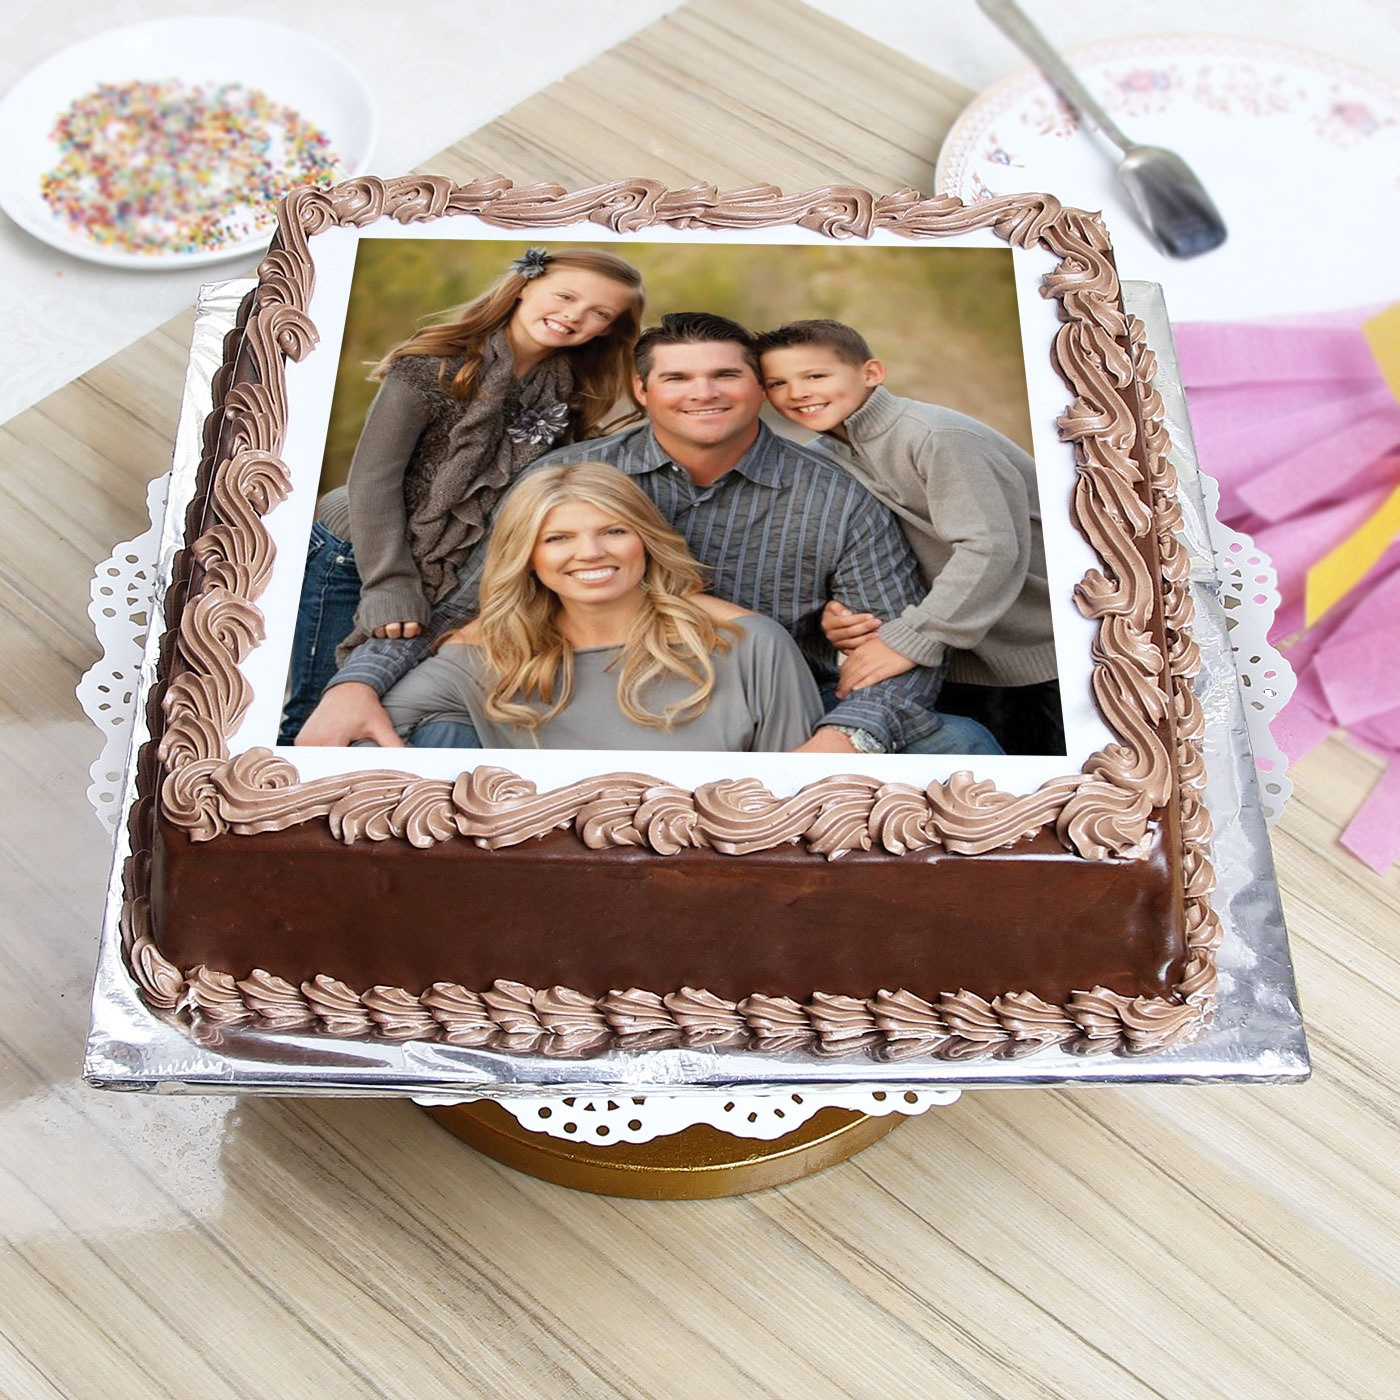 How To Send Birthday Cakes Usa From India Quora